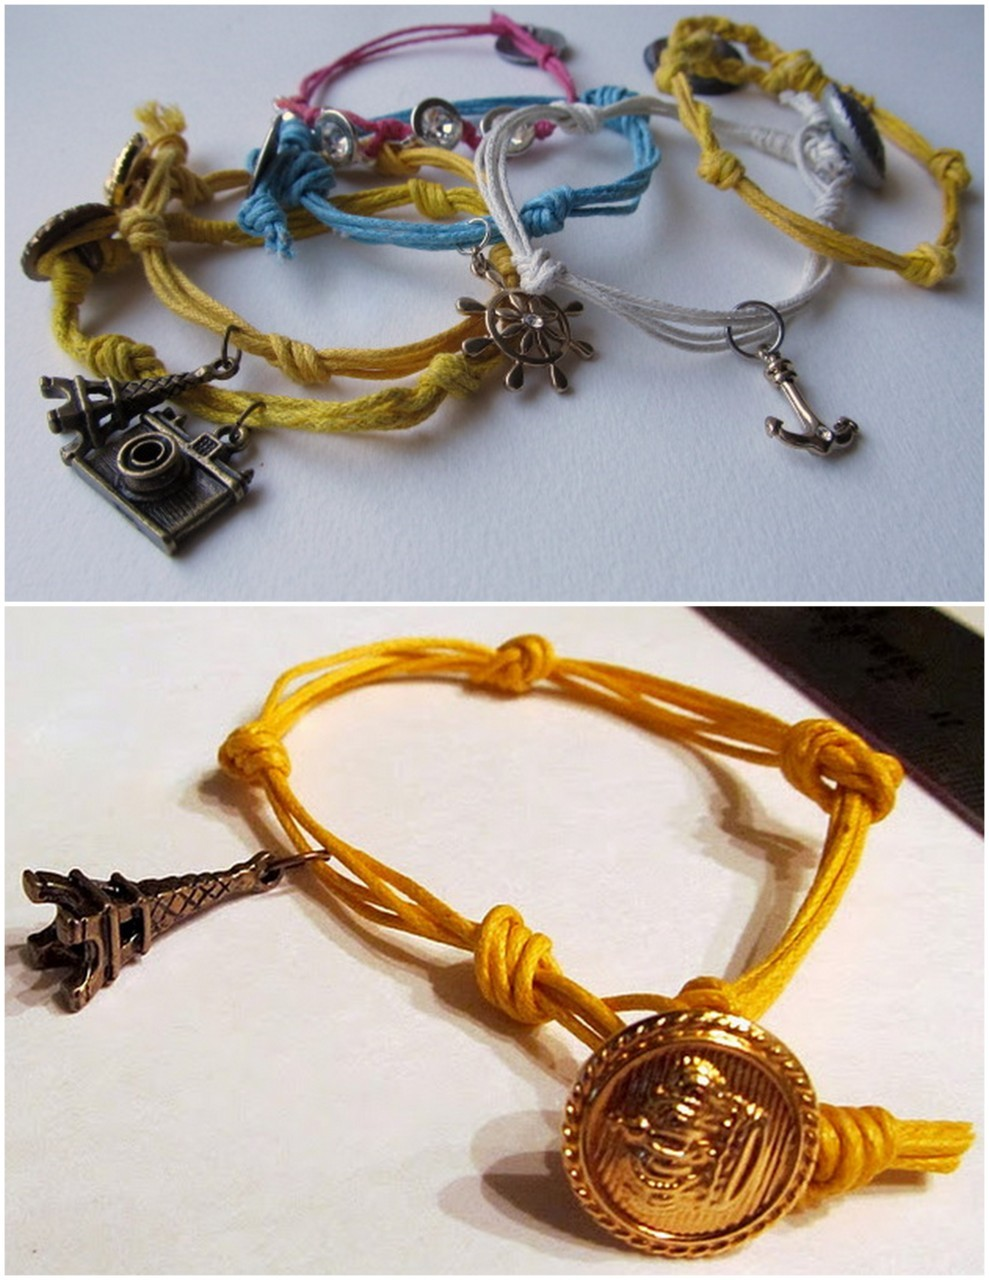 truebluemeandyou:  DIY Charm Bracelet with Button Closure. So cheap, personal and easy to make for gifts. Using braiding cord and charms, combined with a simple button closeure, anyone can do this. This is one of my favorite sites for cheap, doable DIYs that look great! Tutorial at Wobisobi here.  need